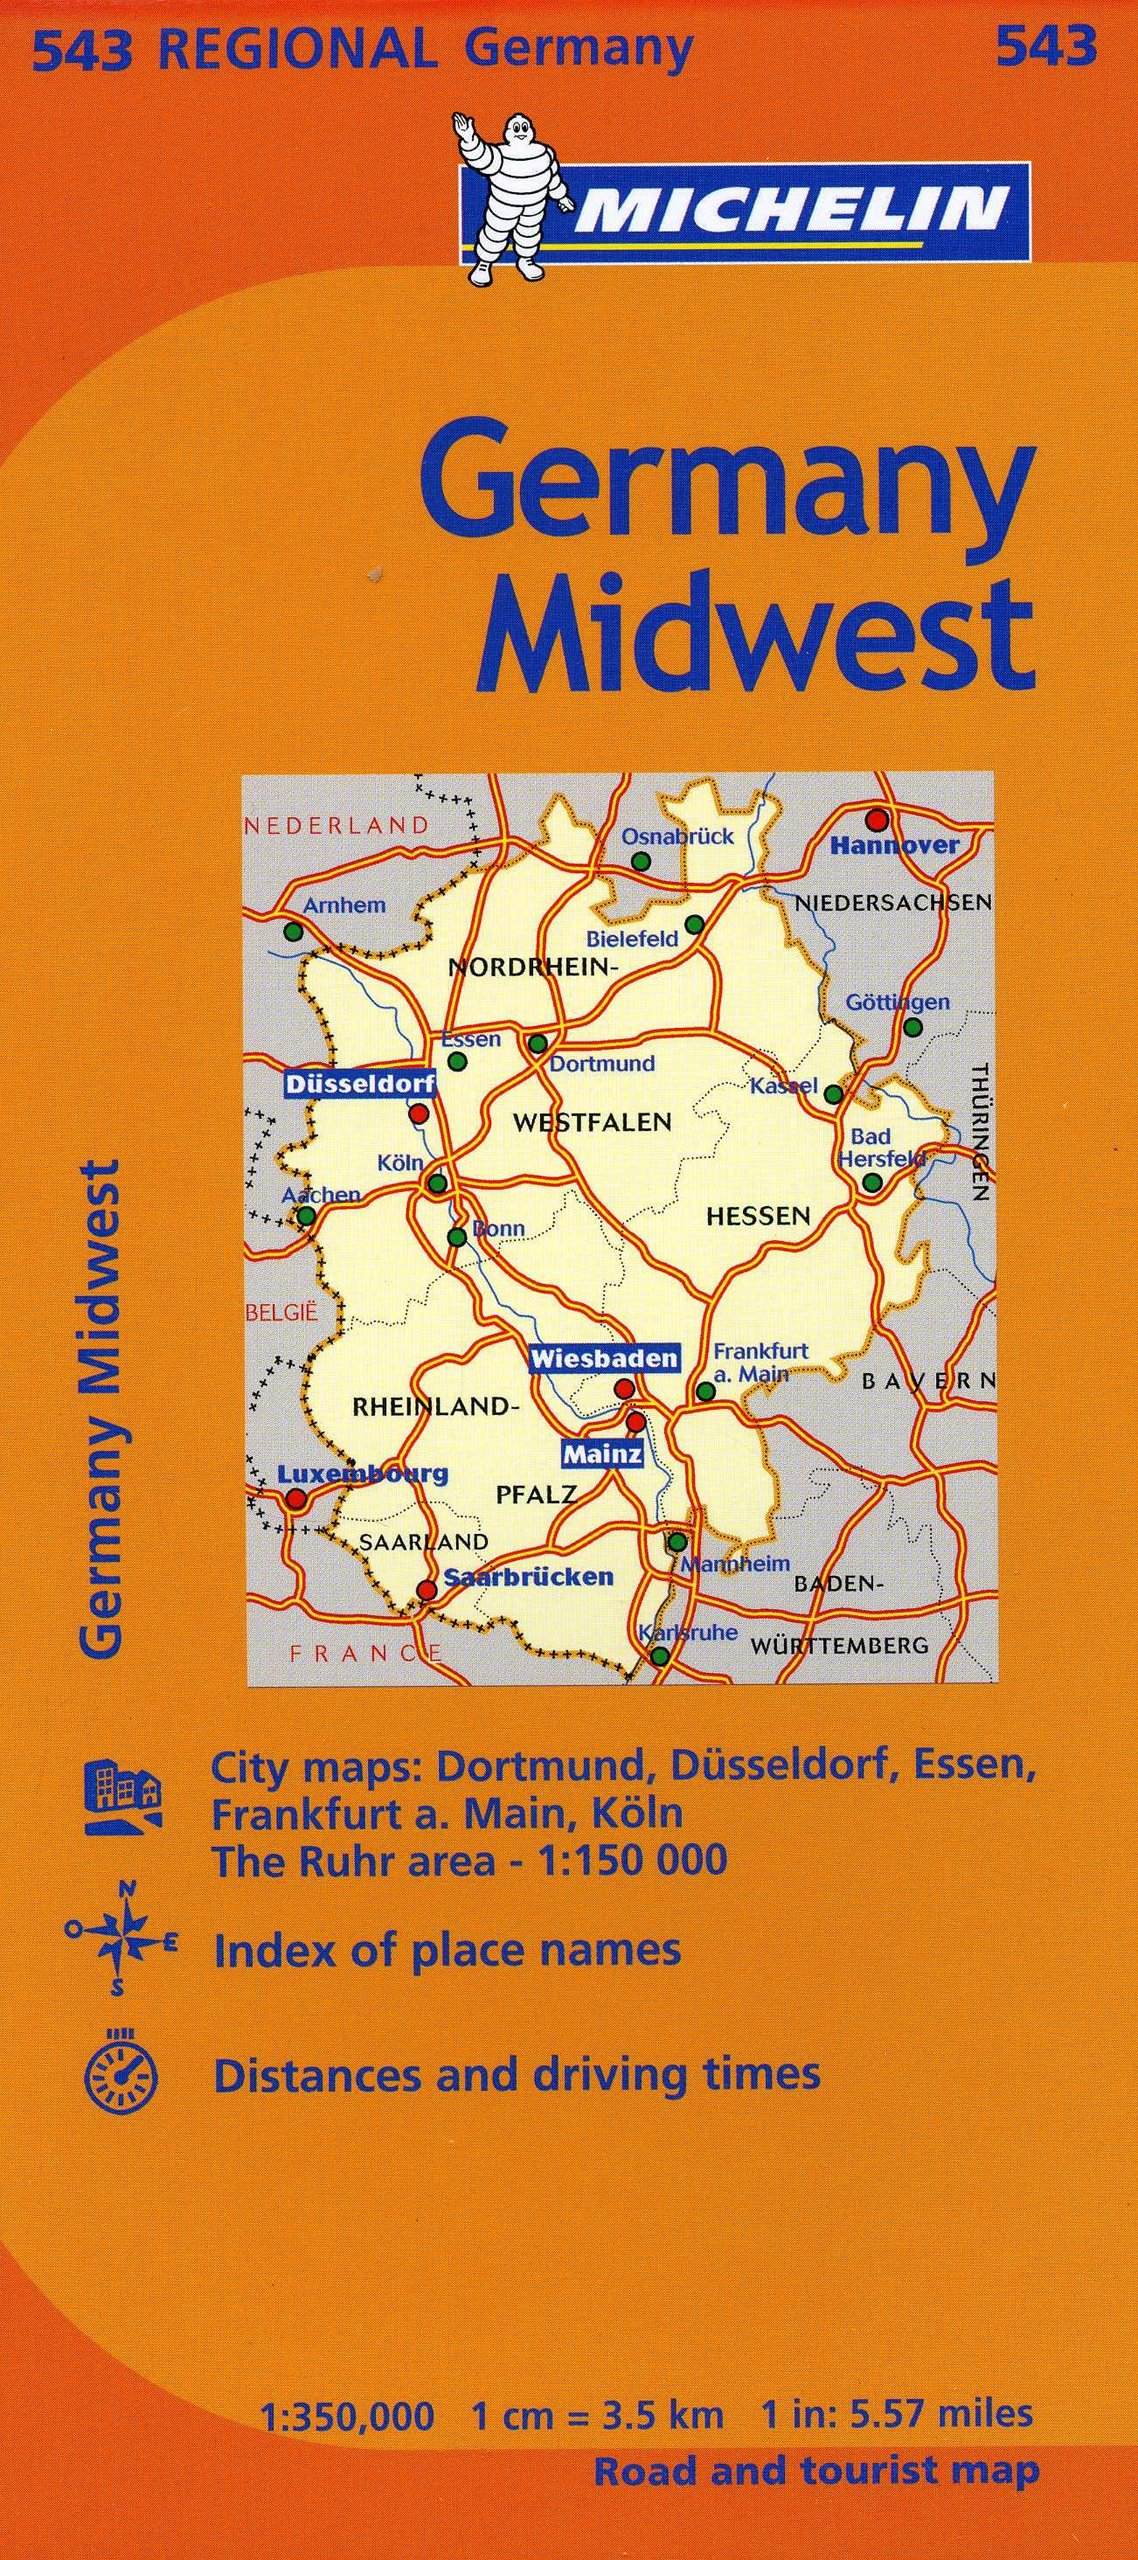 michelin germany midwest map 543 mapsregional michelin michelin 9782067186125 amazoncom books